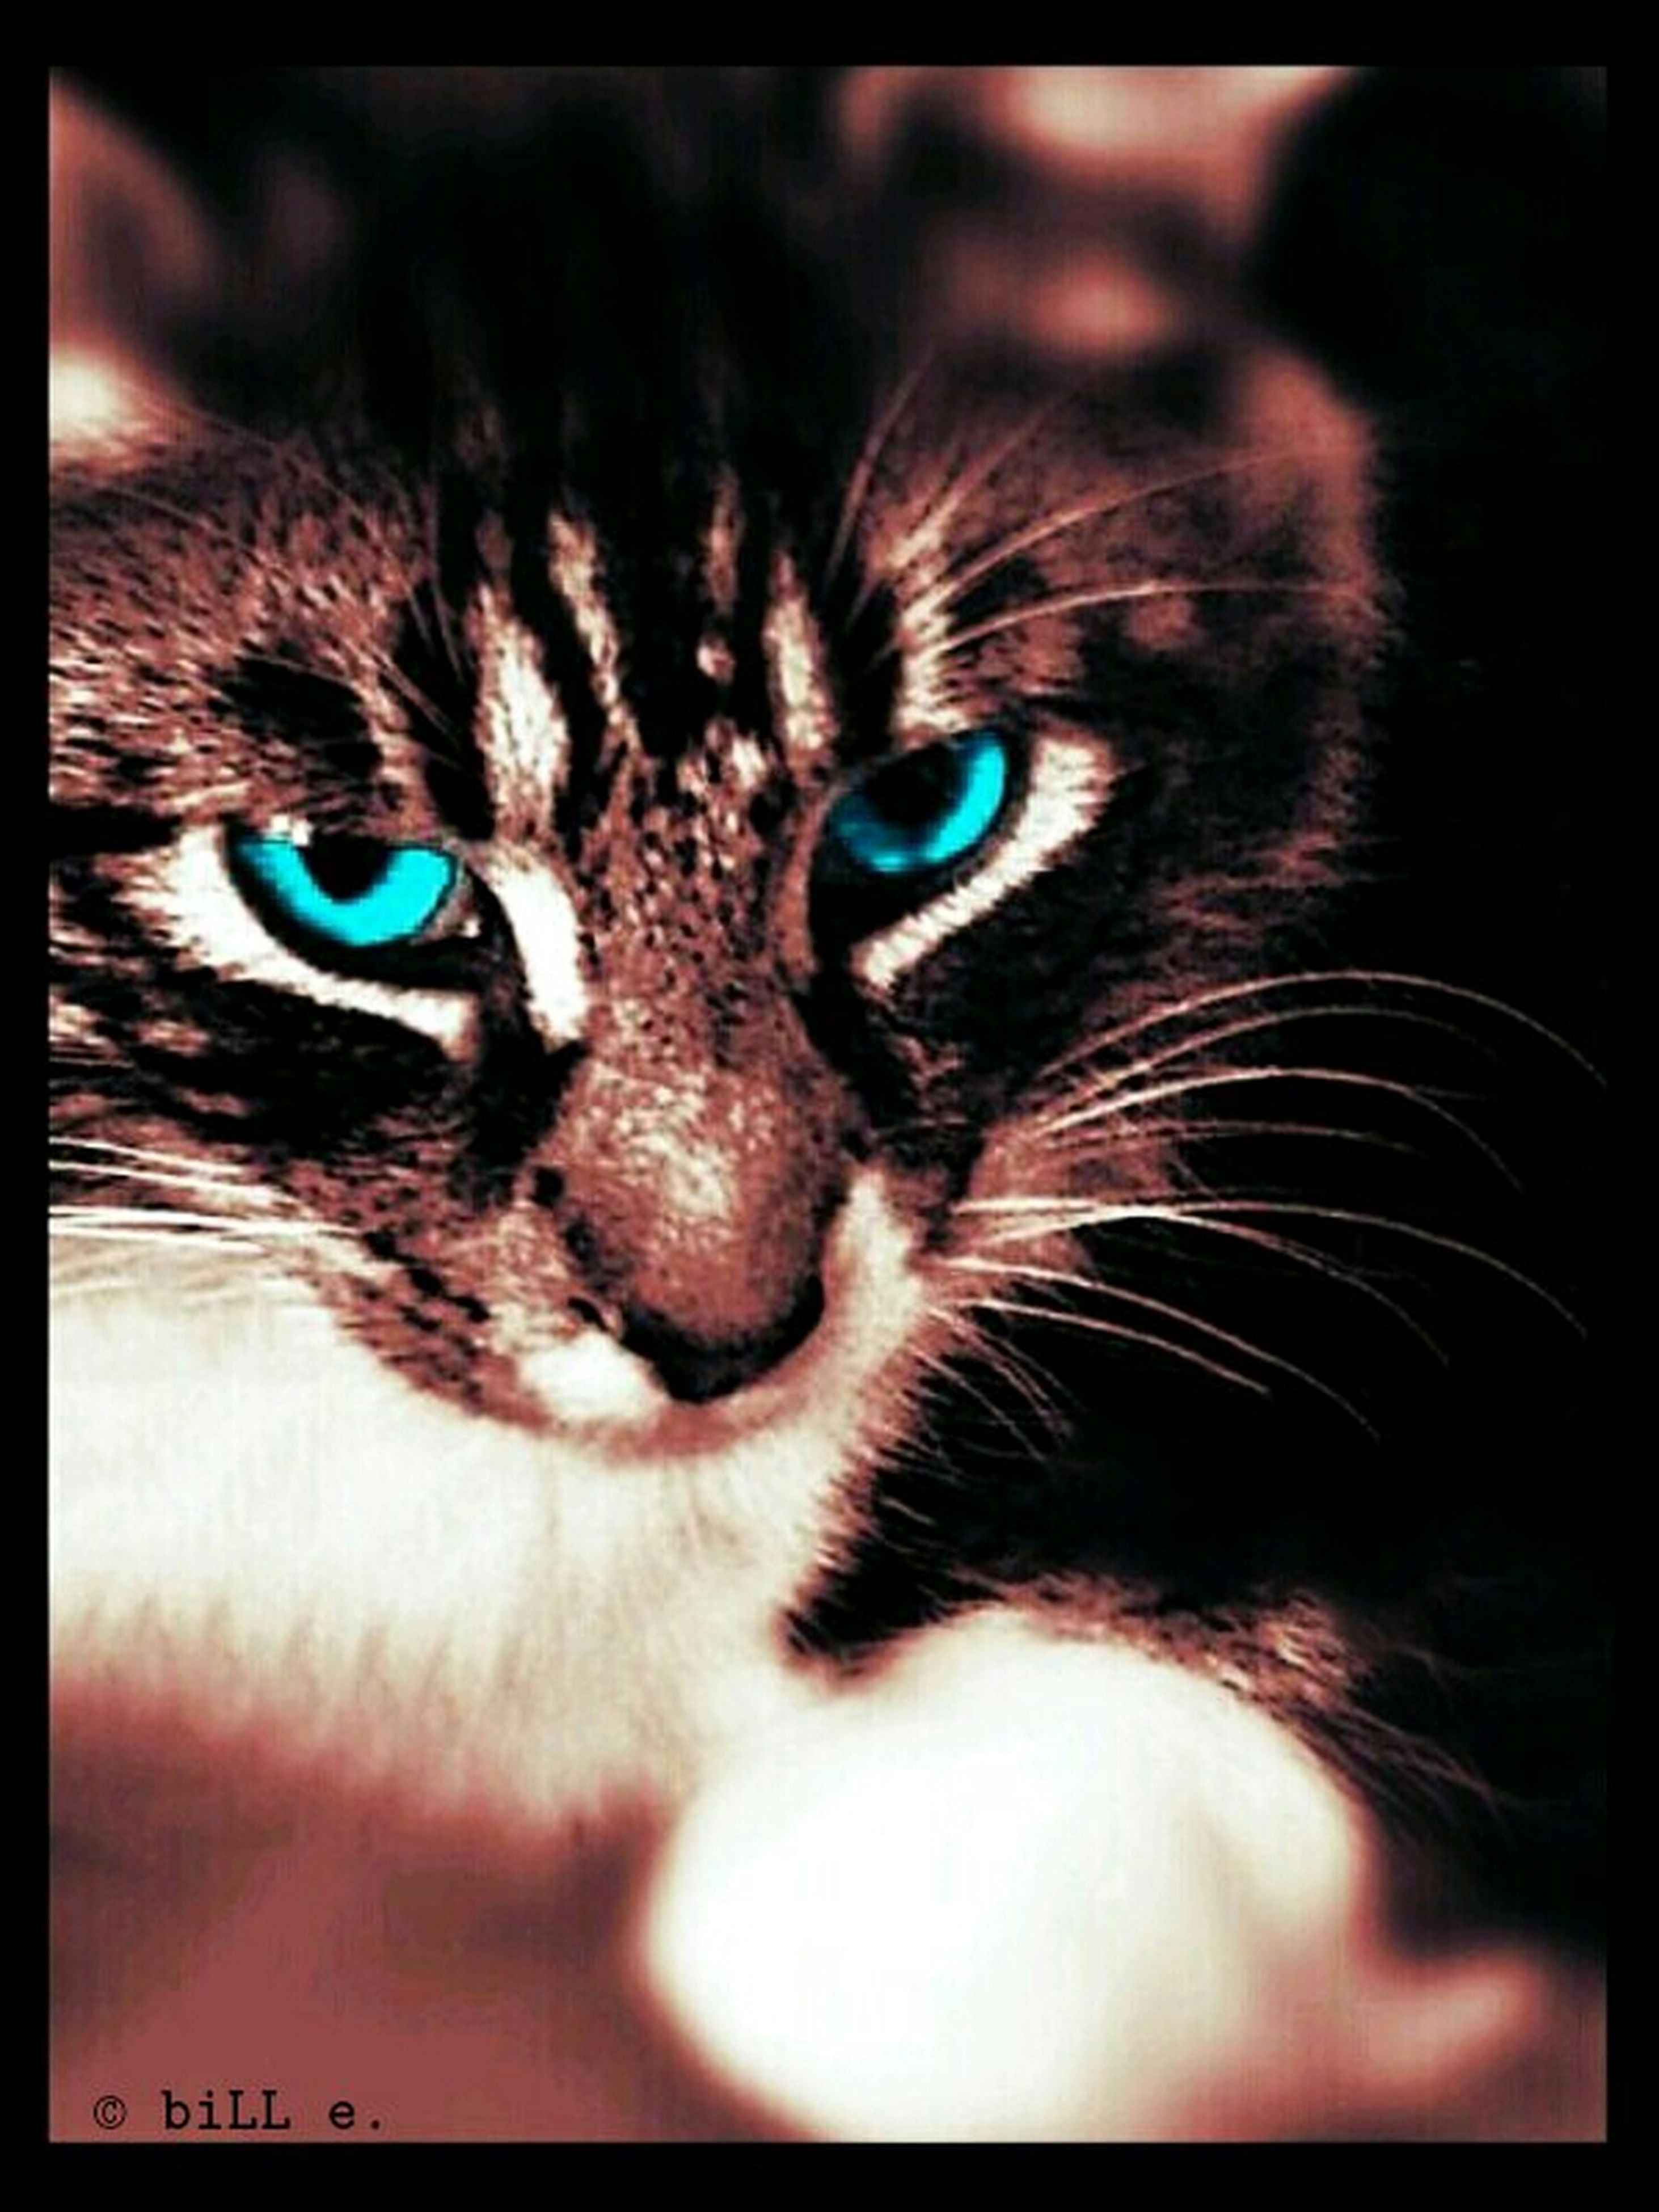 one animal, animal themes, domestic cat, pets, cat, domestic animals, feline, whisker, transfer print, close-up, indoors, animal head, looking at camera, portrait, animal eye, auto post production filter, mammal, staring, alertness, animal body part